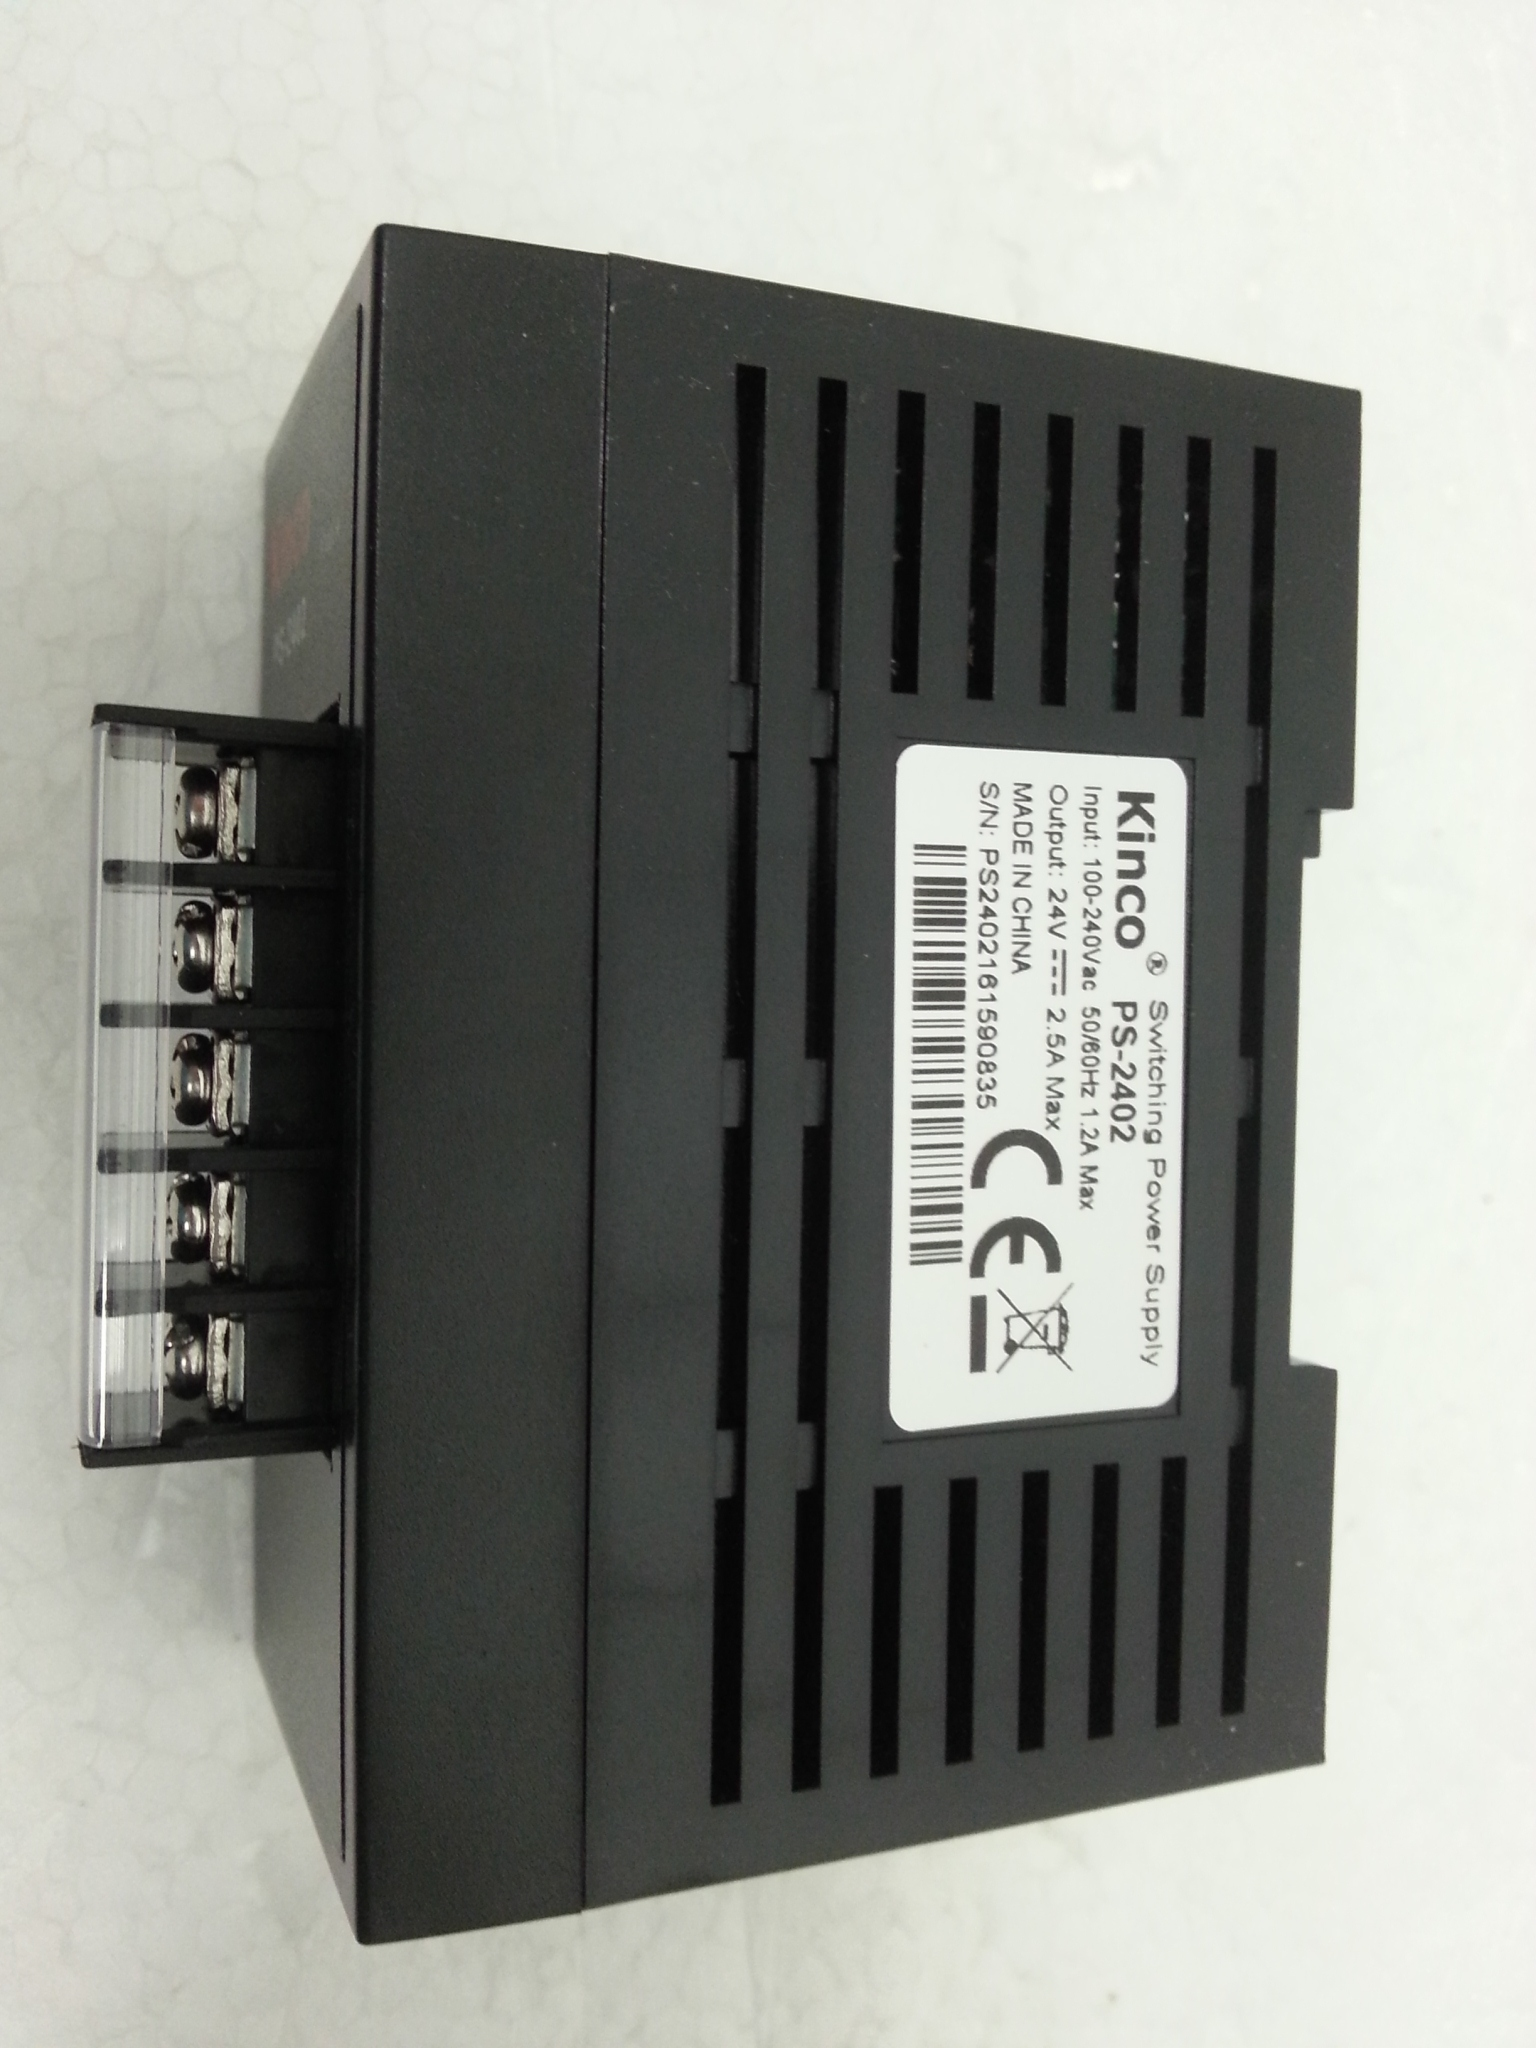 PS2402 24Vdc-2A Power supply Kinco.